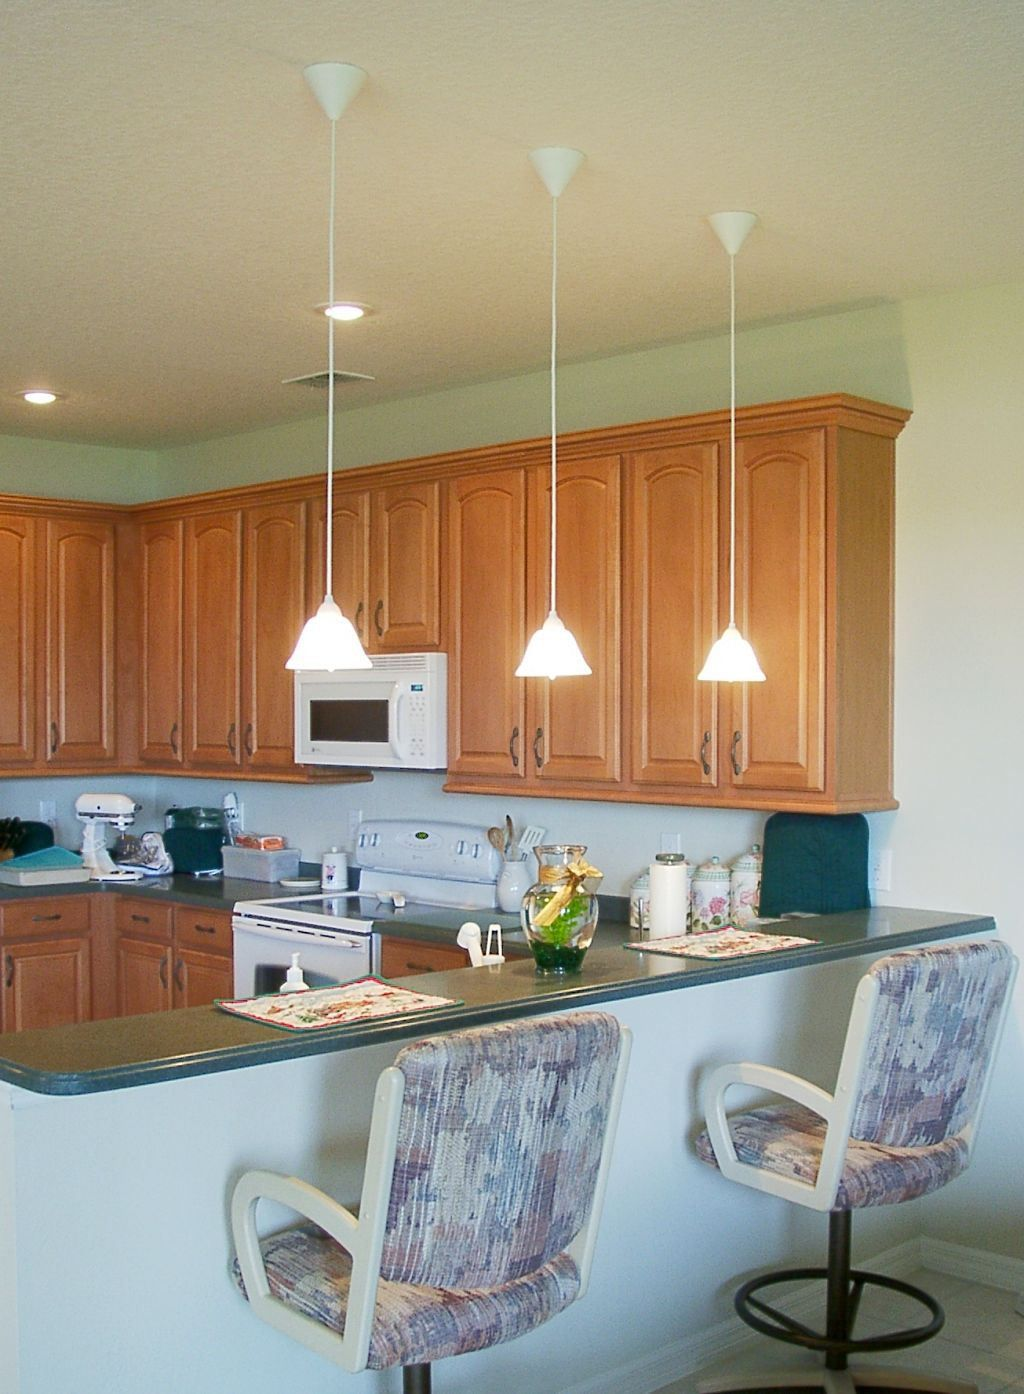 Mini Pendant Lights For Kitchen Island Low Hanging Mini Pendant Lights Over Kitchen Island For An Apartment